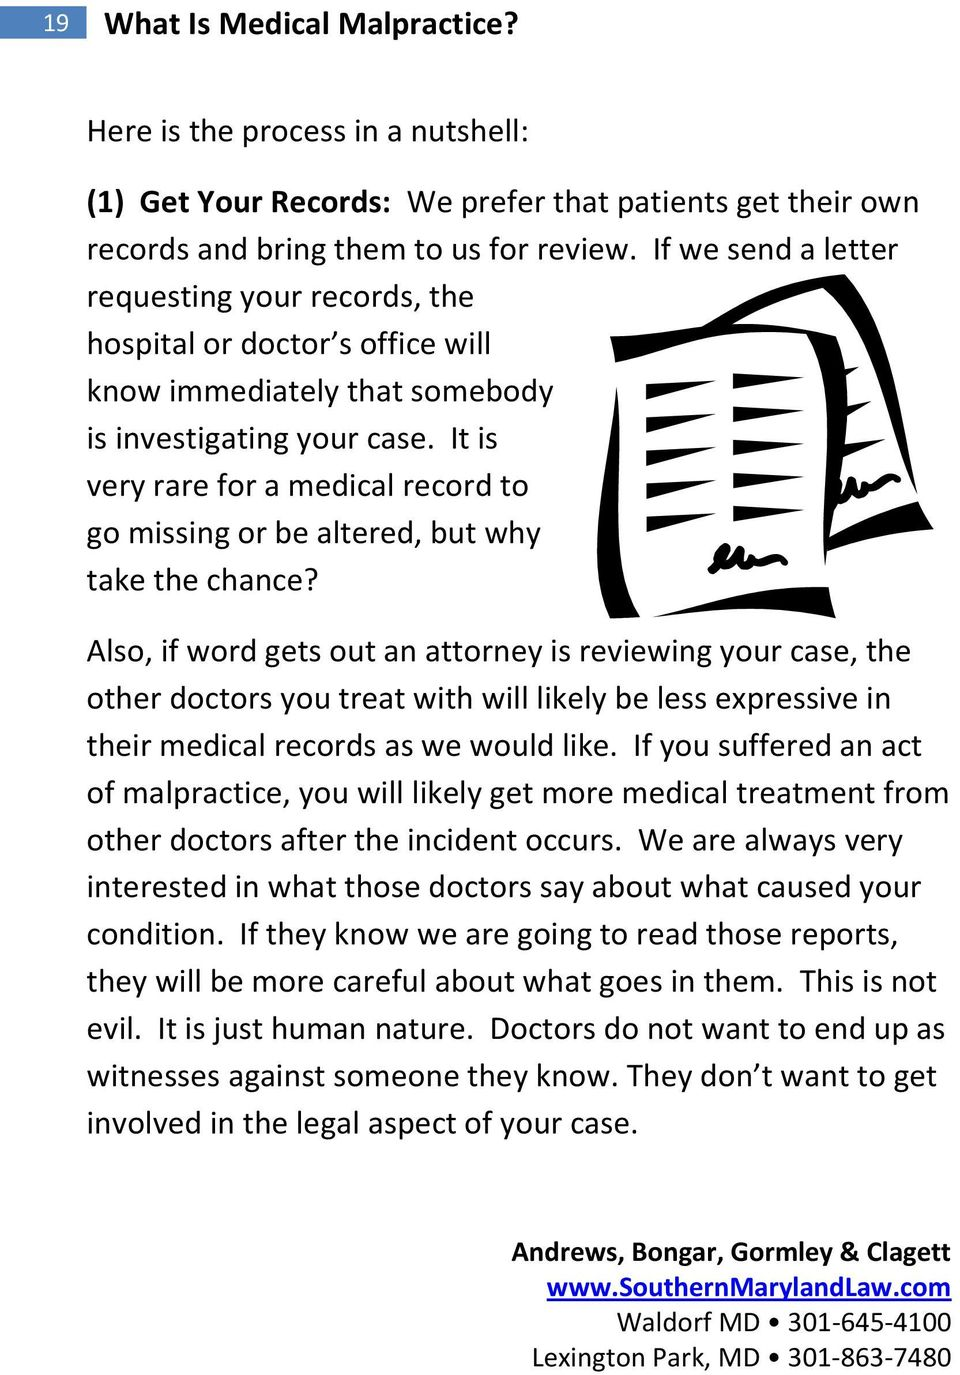 It is very rare for a medical record to go missing or be altered, but why take the chance?